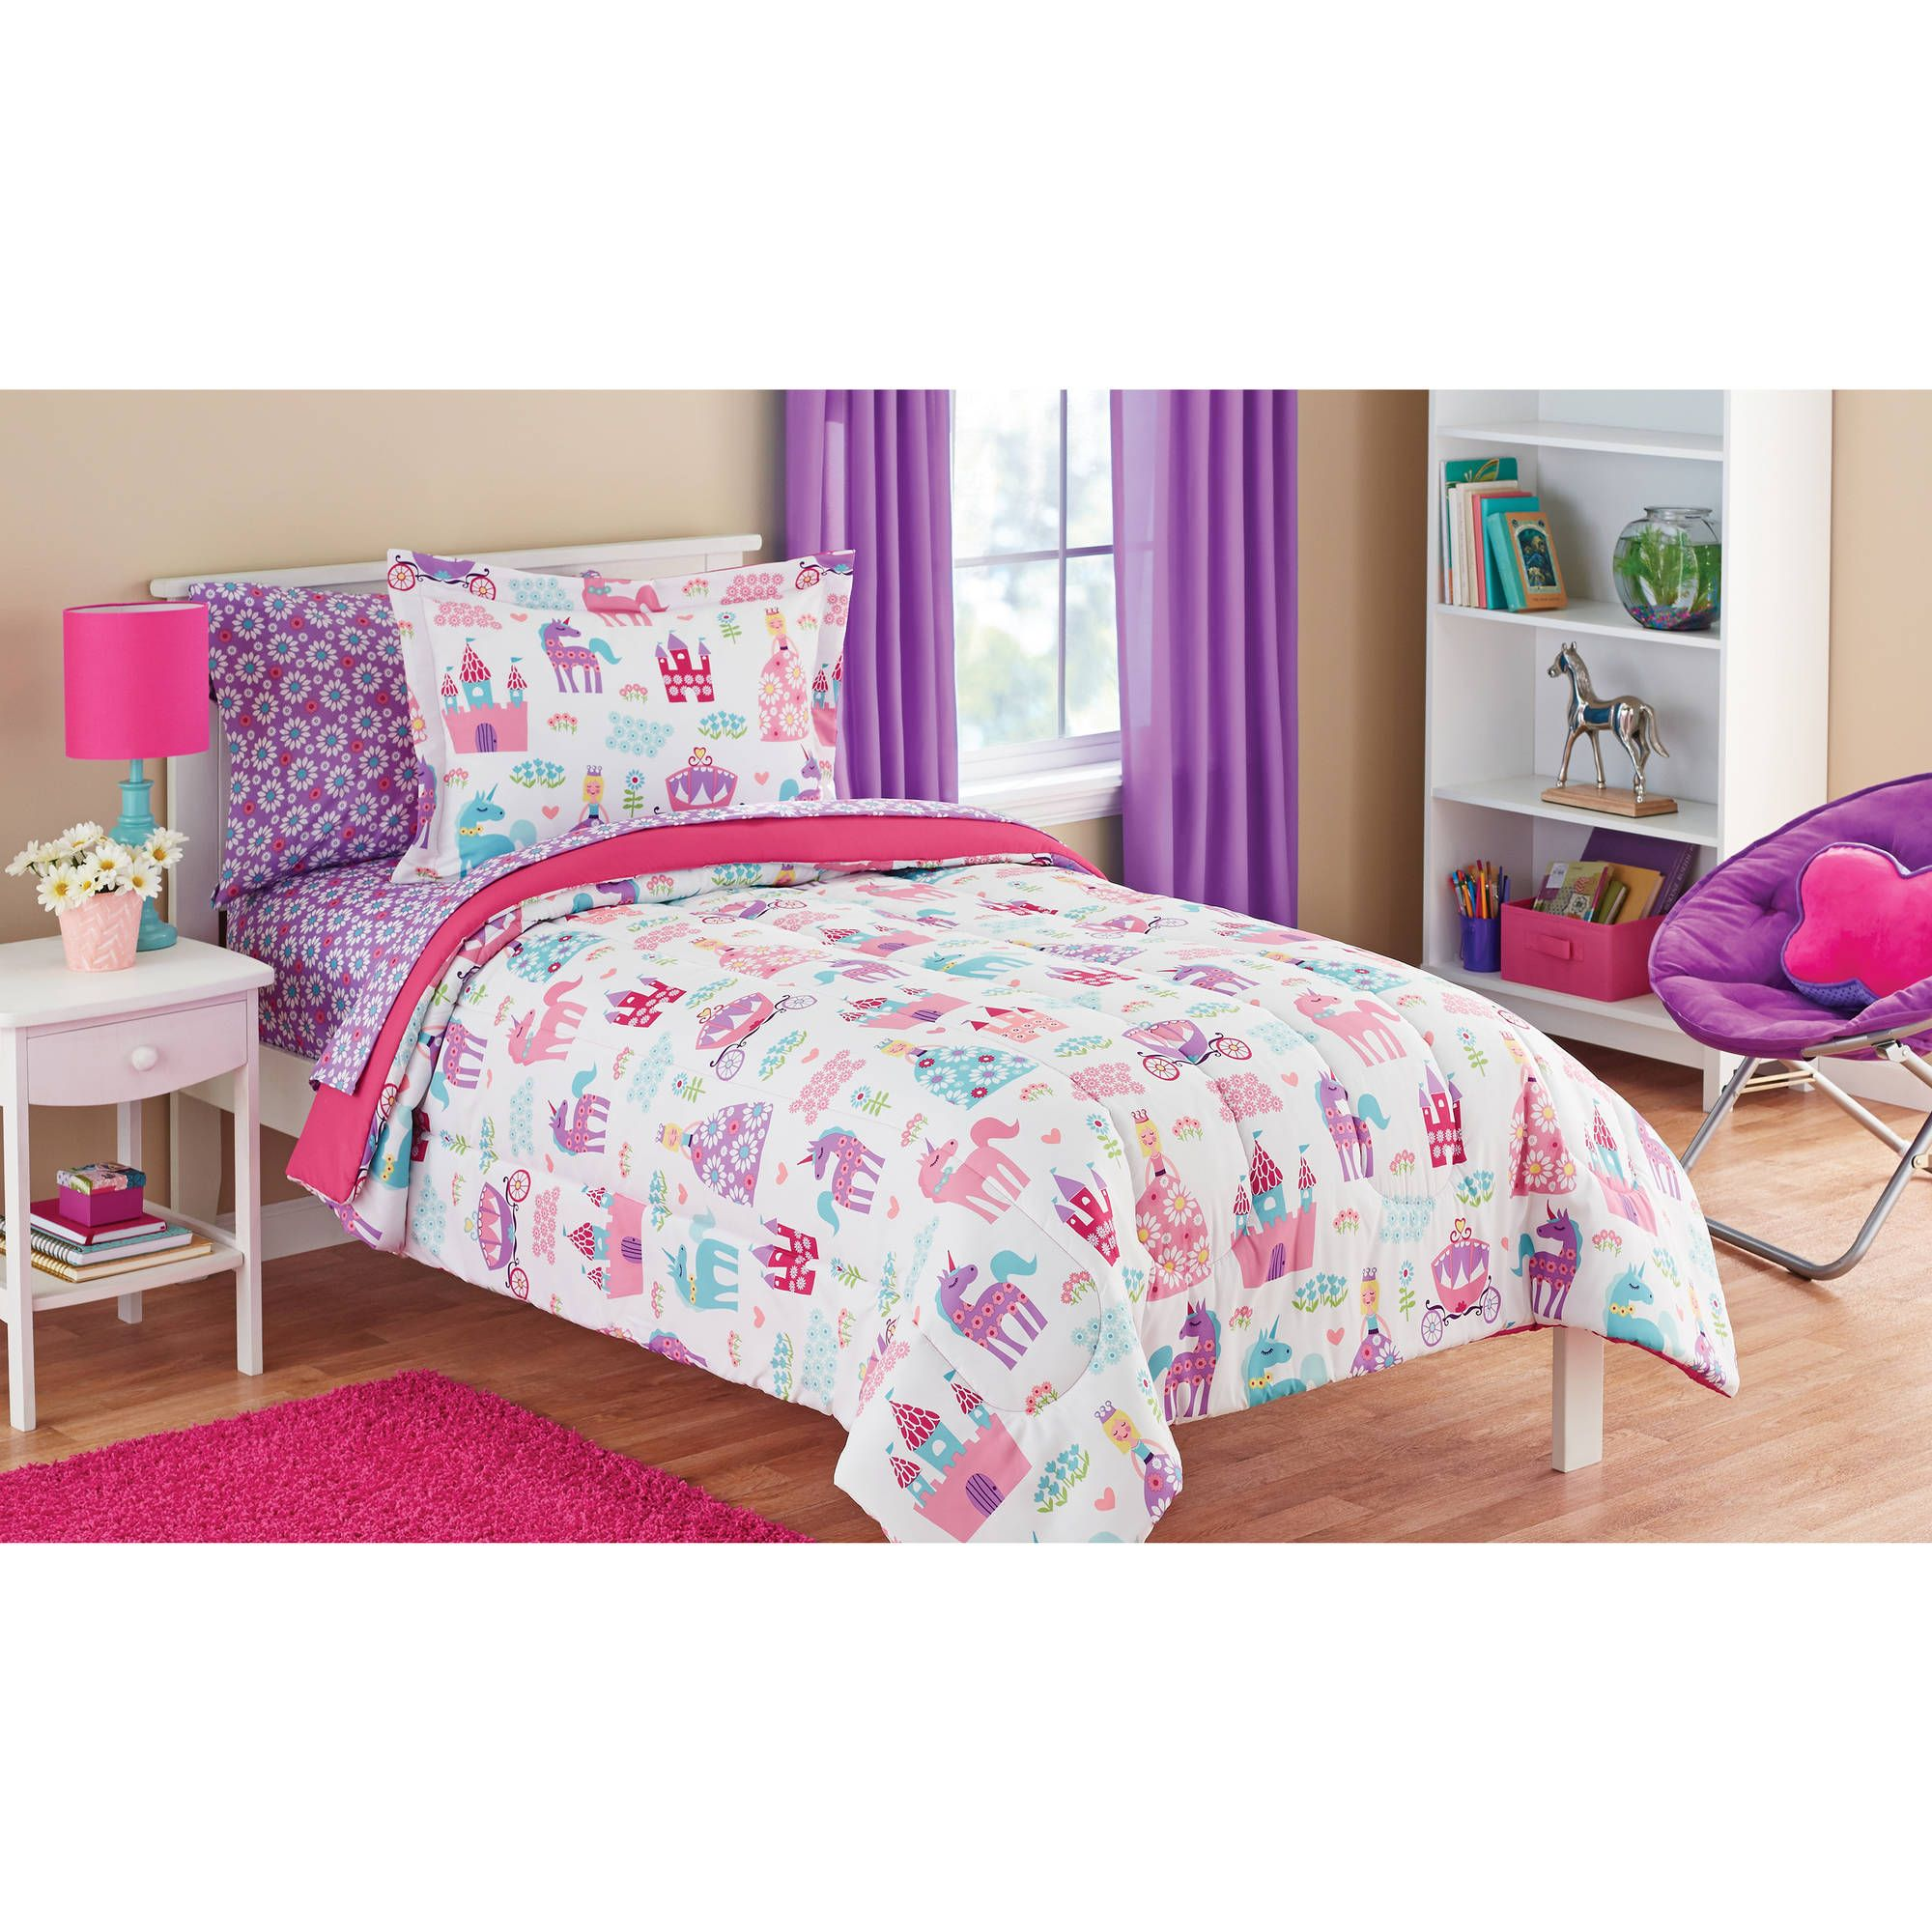 Buy Mainstays Kids Pretty Princess Bed In A Bag Bedding Set At Adorable Kids Bedroom Set Review